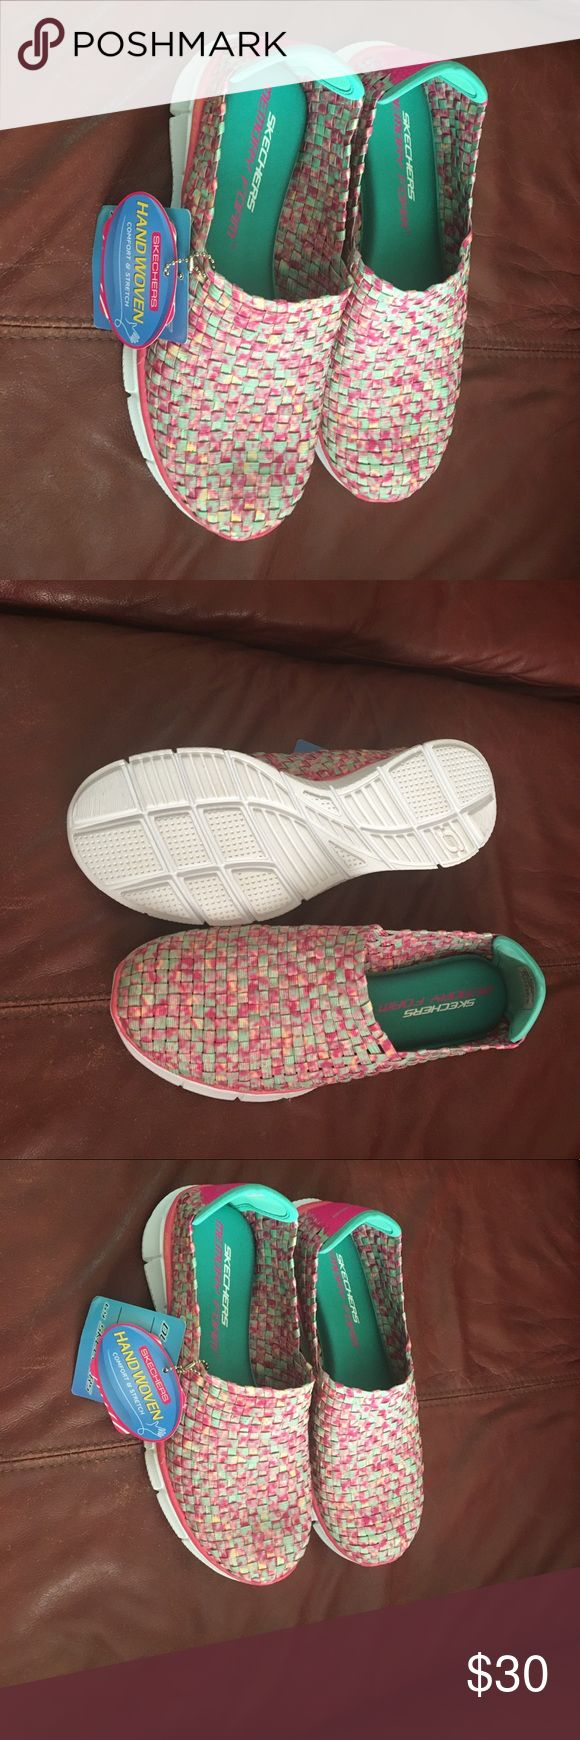 Ladies Skechers pink and green size 7.5 These NWT ladies pink and green Skechers are very comfy and are sized 7.5 but run 1/2 size big! 30.00 Skechers Shoes Sneakers